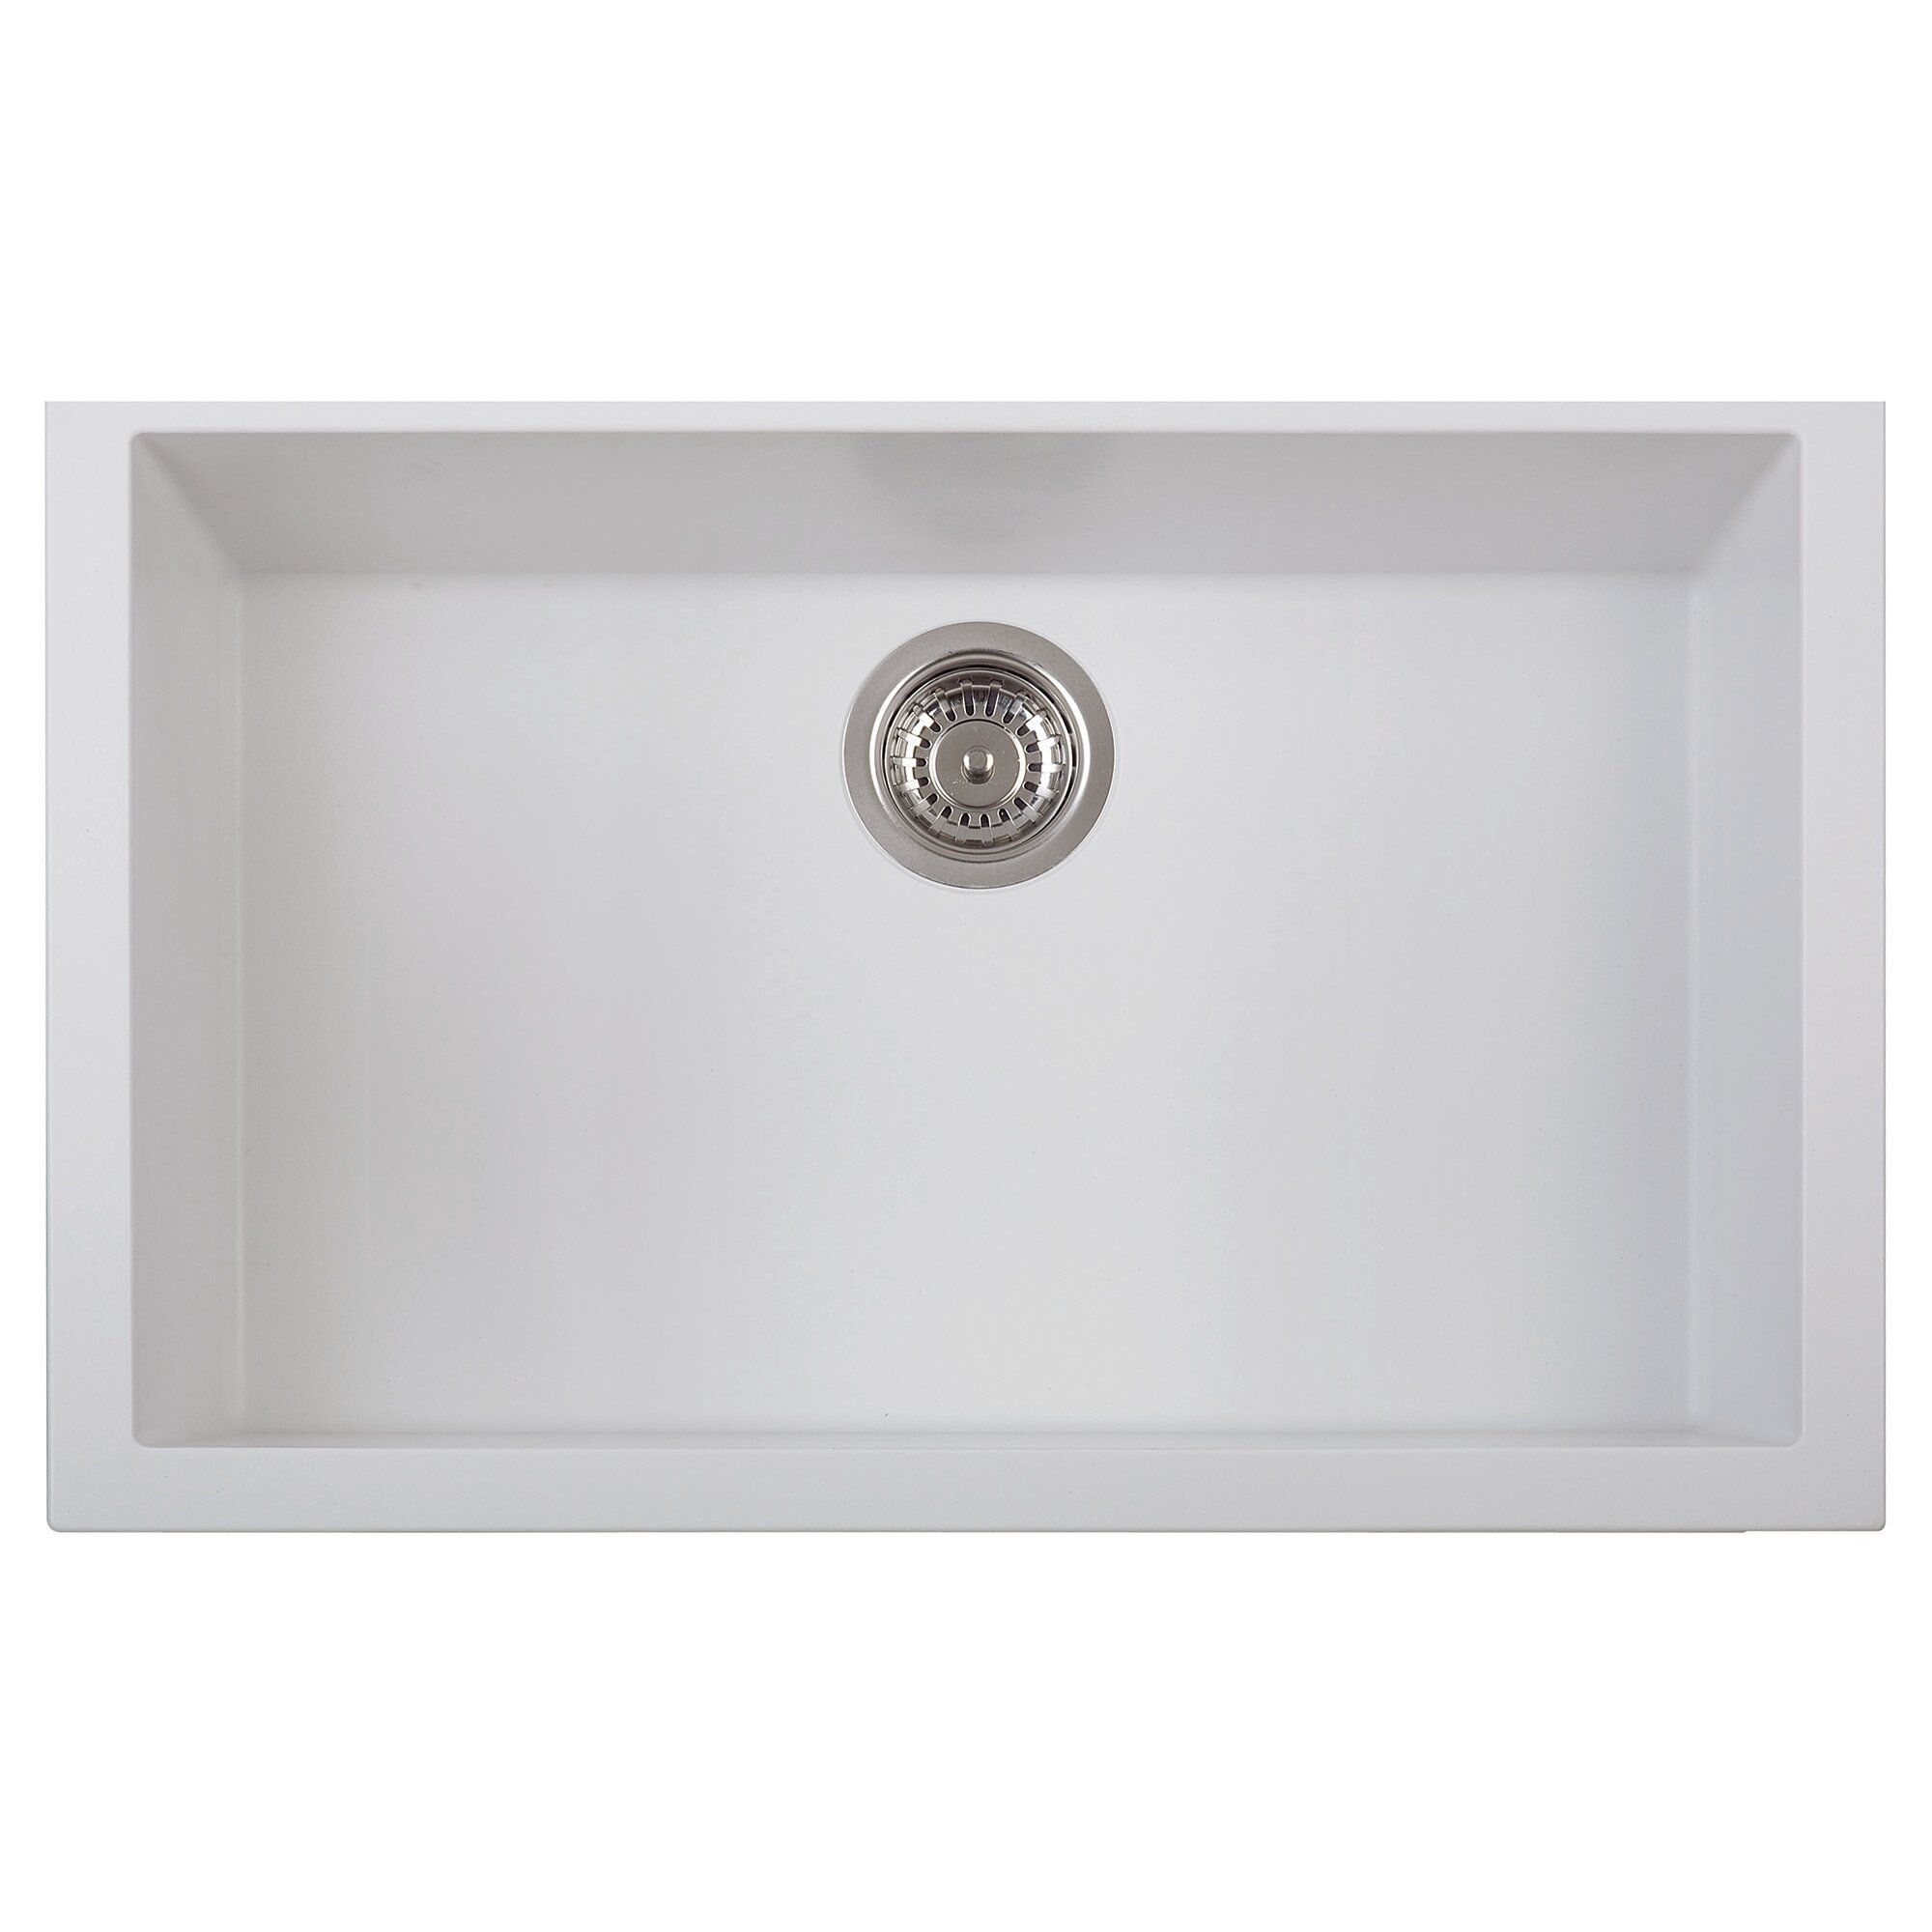 White Kitchen Sink Undermount Alfi Brand Lewis 30 X 1775 Undermount Single Bowl Kitchen Sink